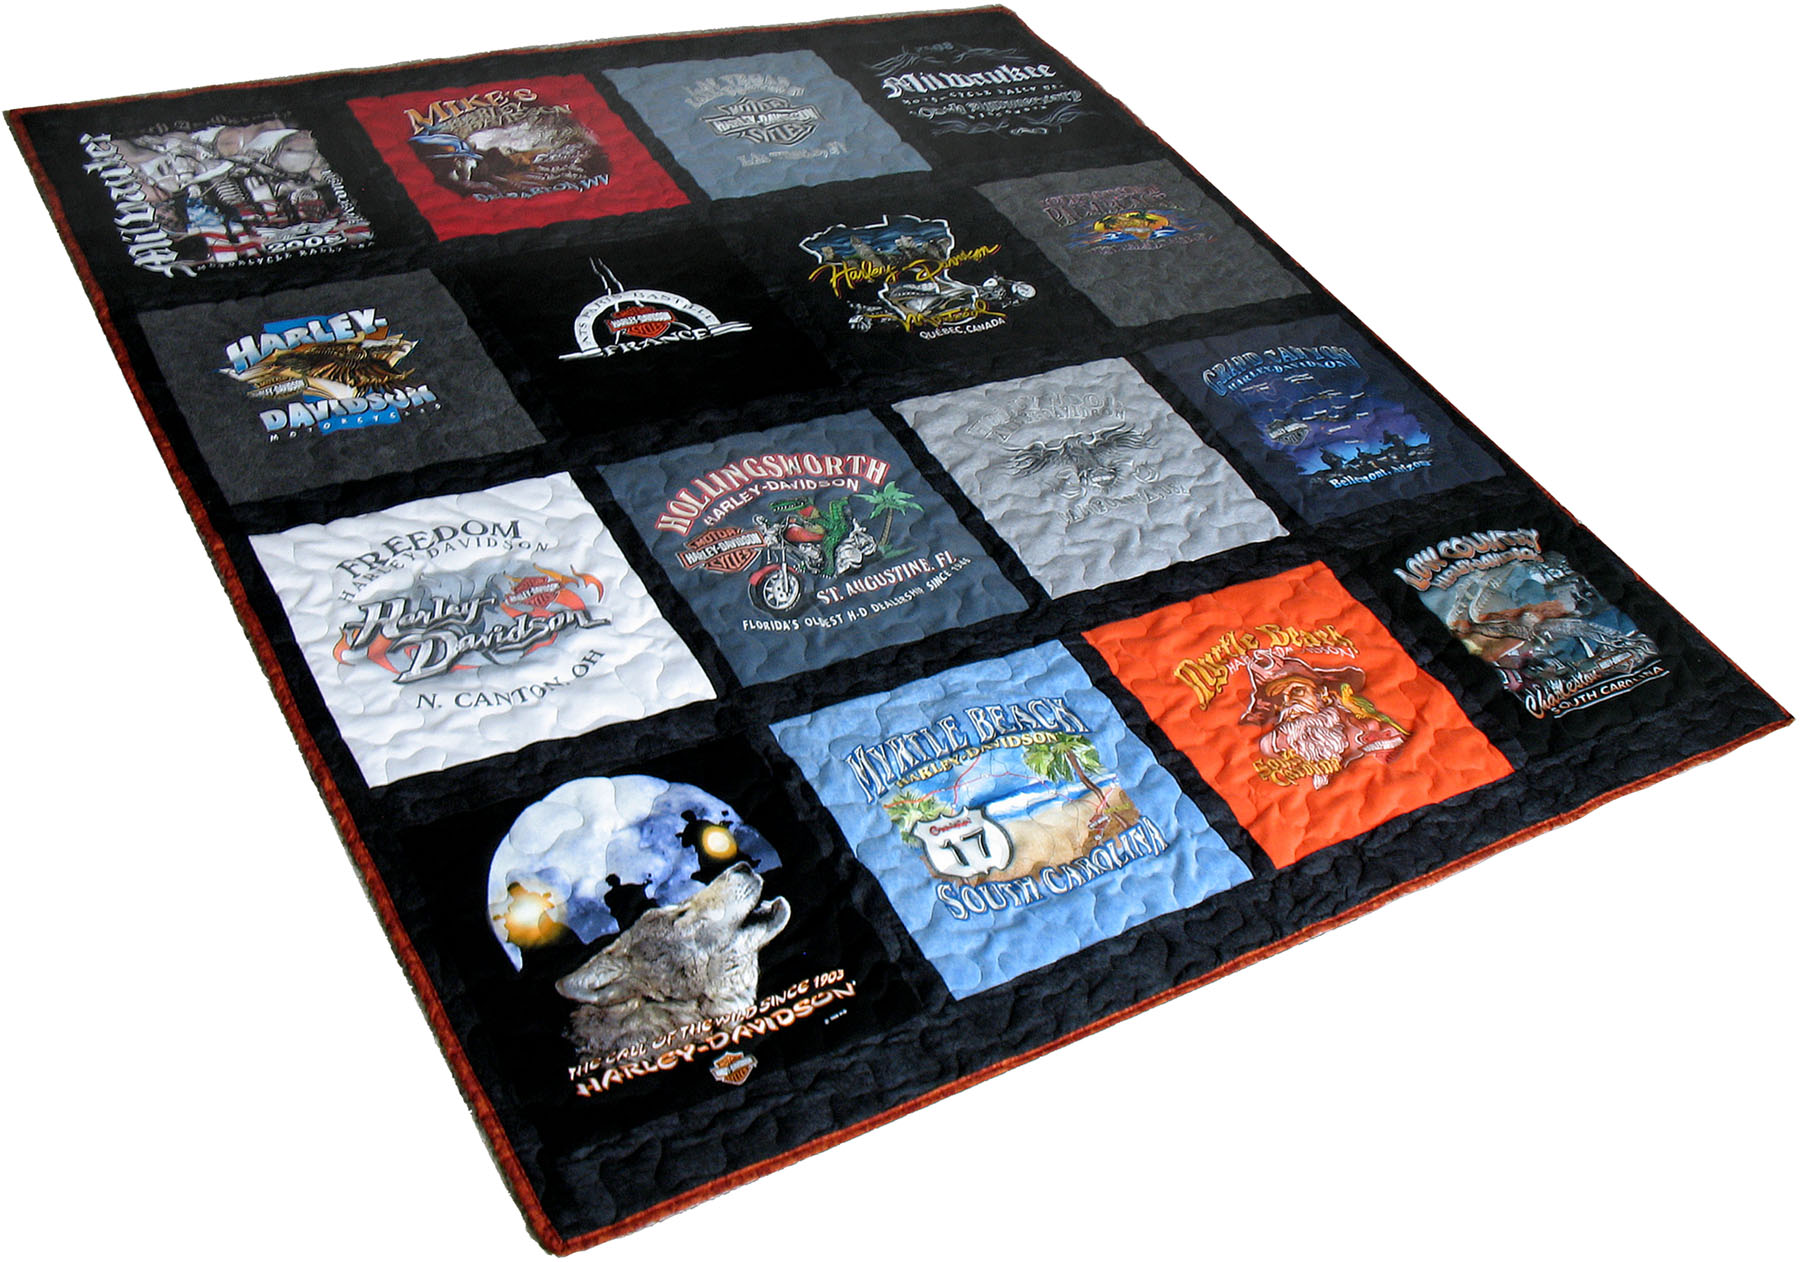 Tshirt Quilts, Tshirt Blankets, Memory Quilts - All Made From Your ... : quilts made from tee shirts - Adamdwight.com